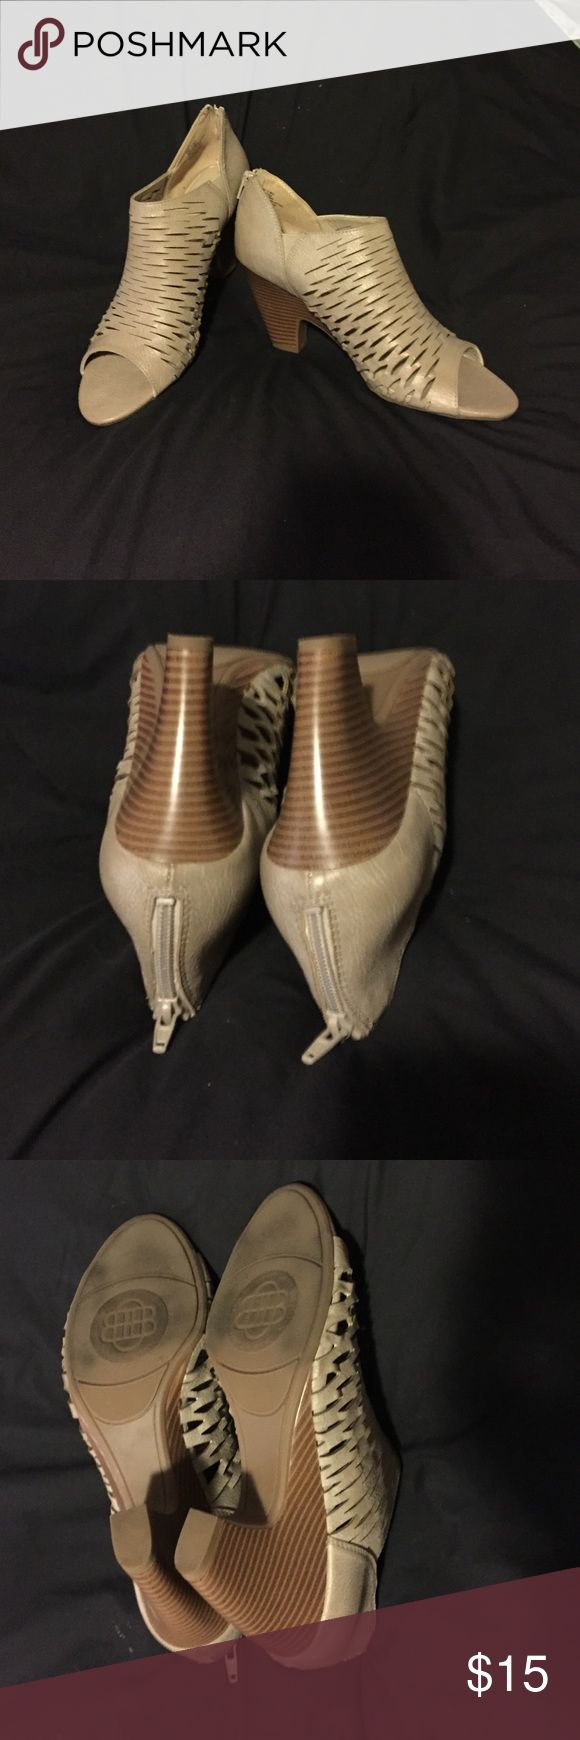 Cage shoes Dana Buchman Meeka Toupe shoes.  Slightly used. Not able to wear heals anymore unfortunately. Size 10M. Dana Buchman Shoes Heels